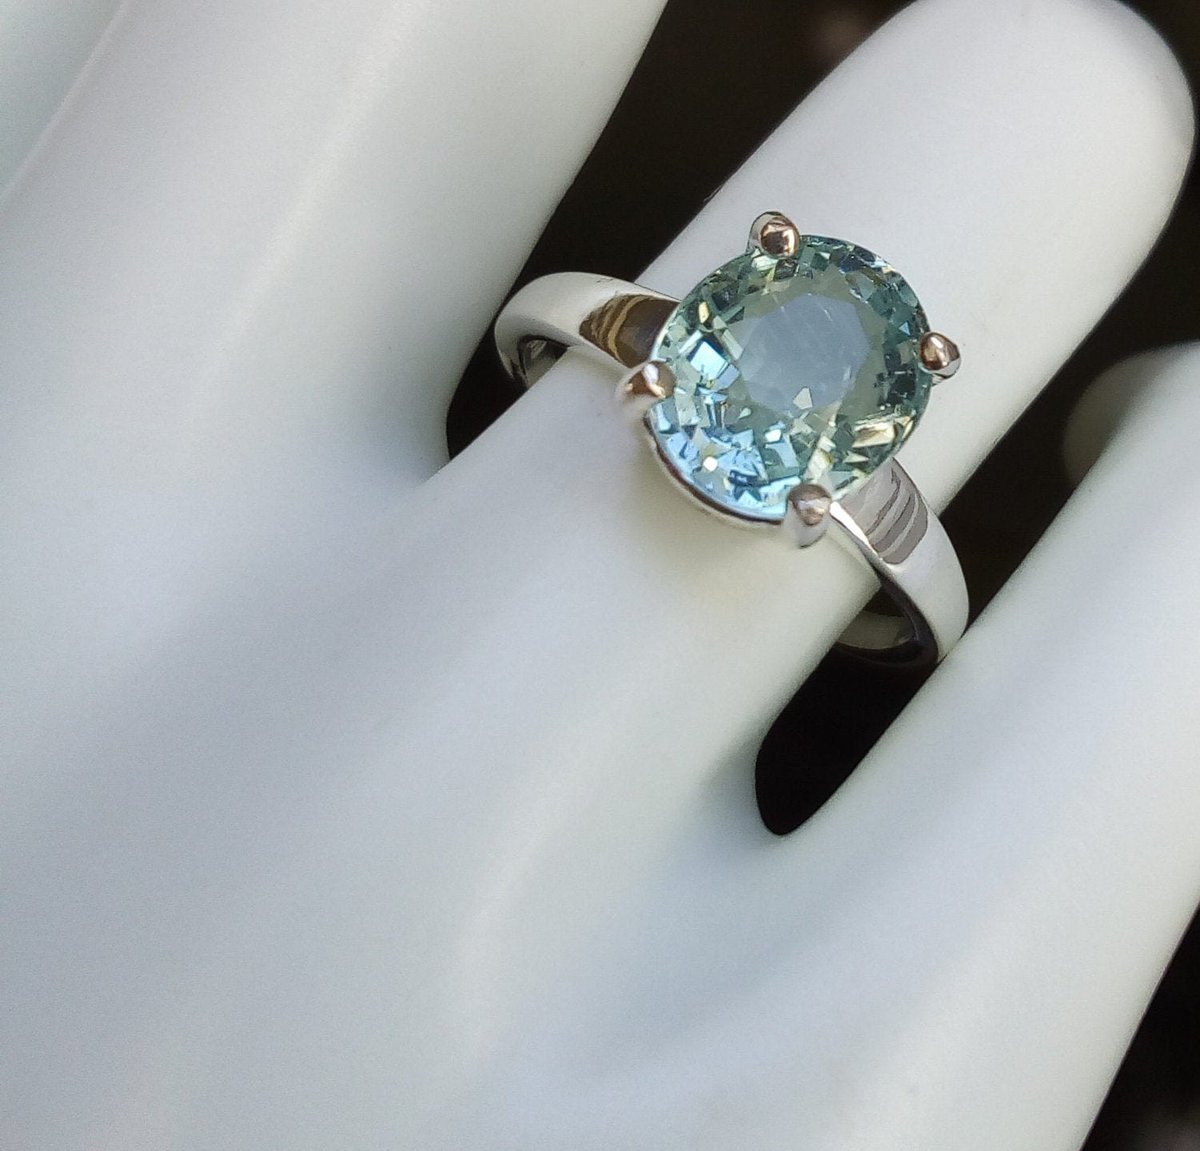 Excited to share the latest addition to my #etsy shop: natural unheated light greenish blue aquamarine ring oval solitaire sterling silver ring size 7 statement engagement jewelry gift https://t.co/PDdiC1Wpxh #blue #oval #aquamarine #silver #women #ring #minimalist https://t.co/CnUs3xsZ5G